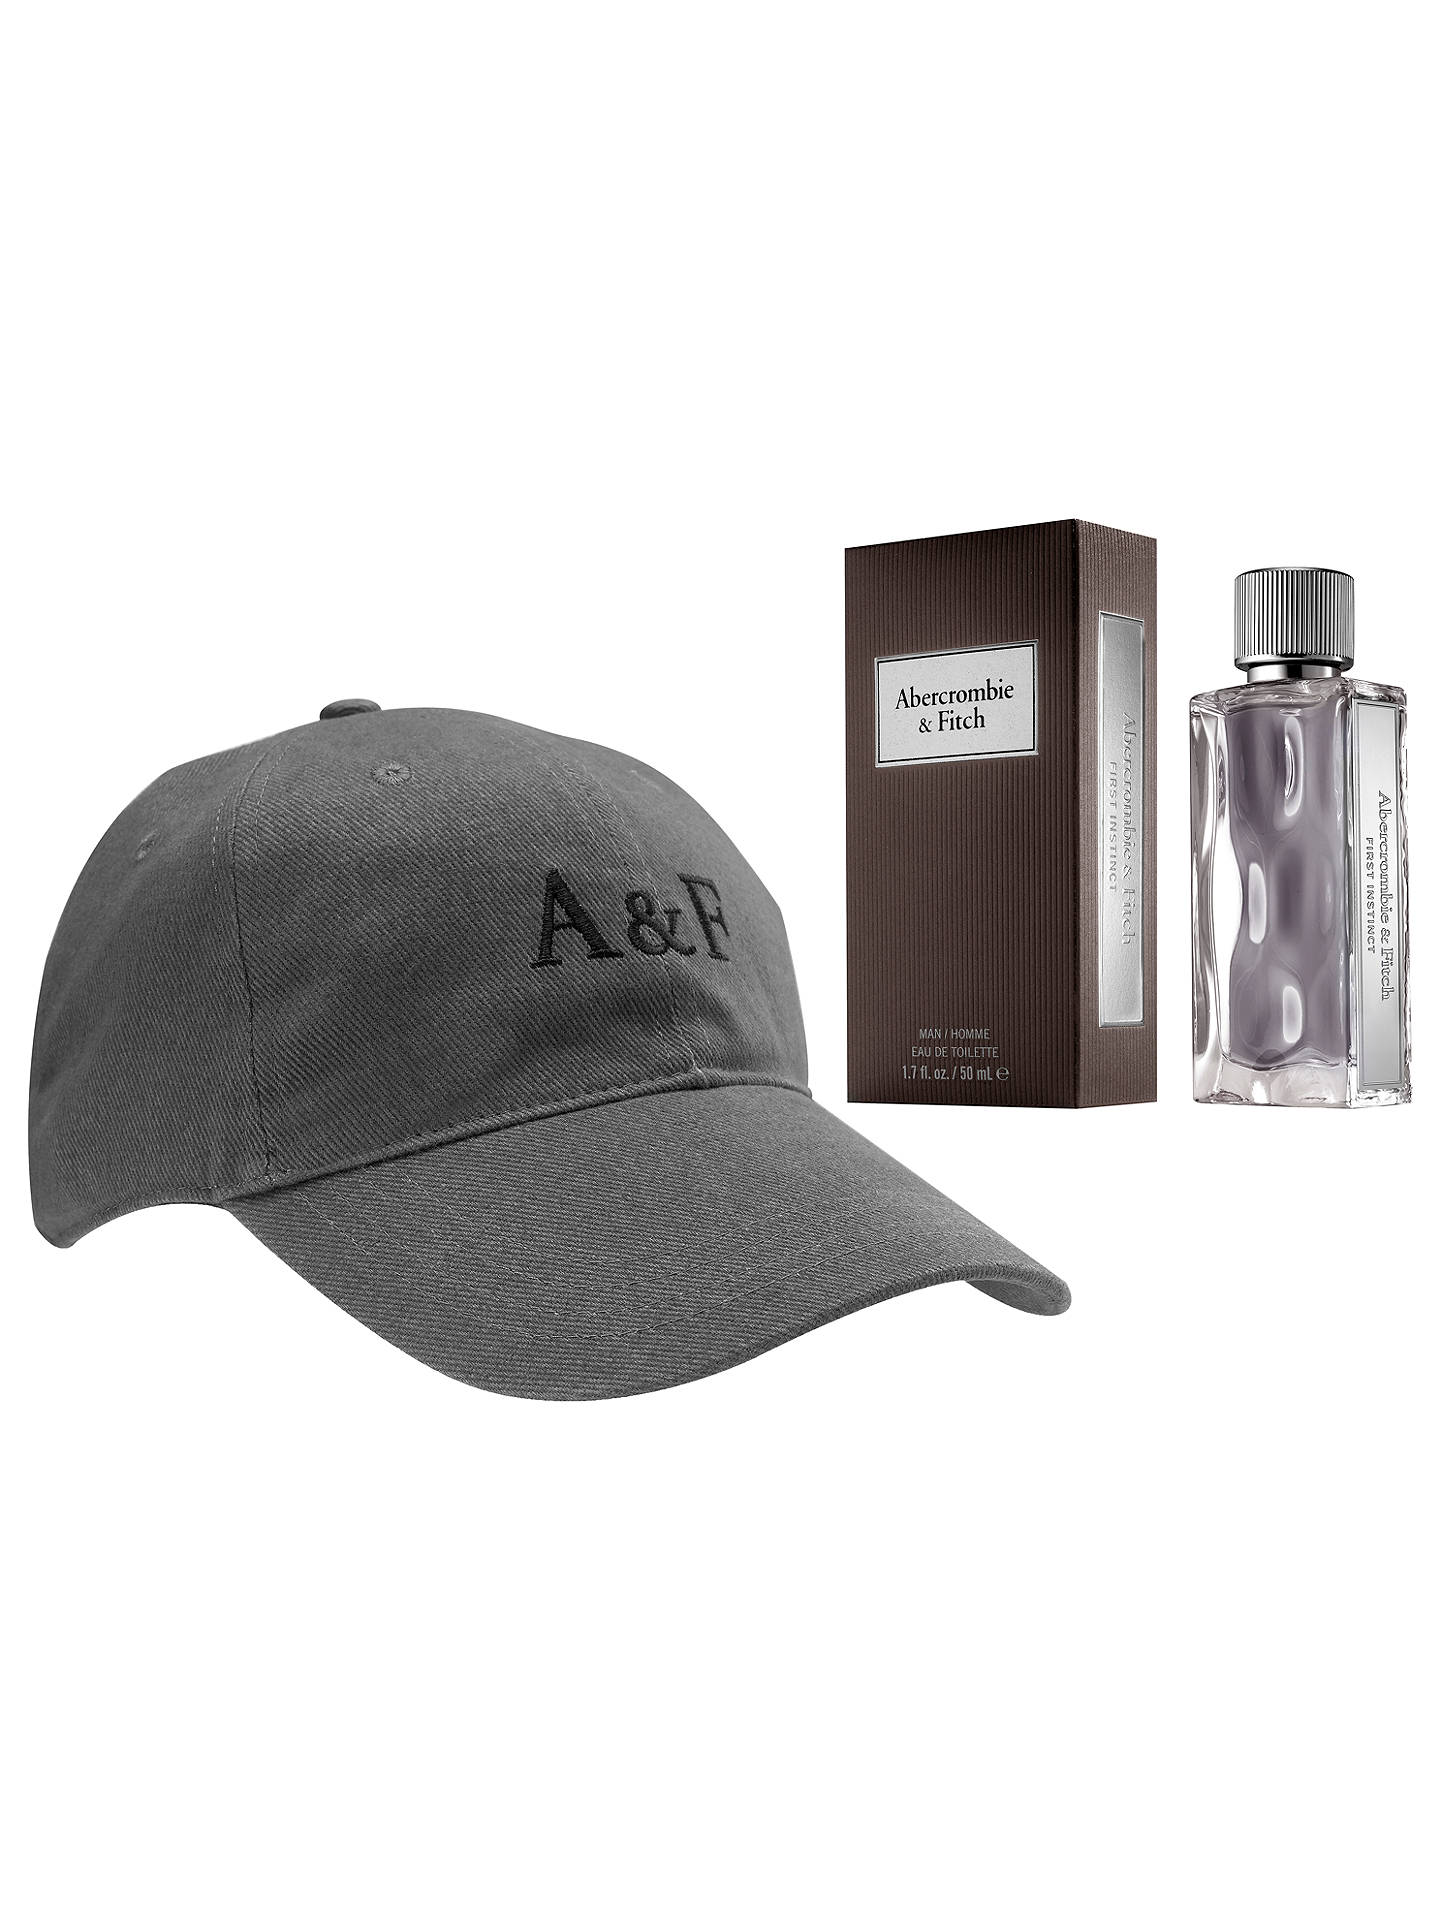 35210038 Buy Abercrombie & Fitch First Instinct 50ml Eau de Toilette with Gift  Online at johnlewis.